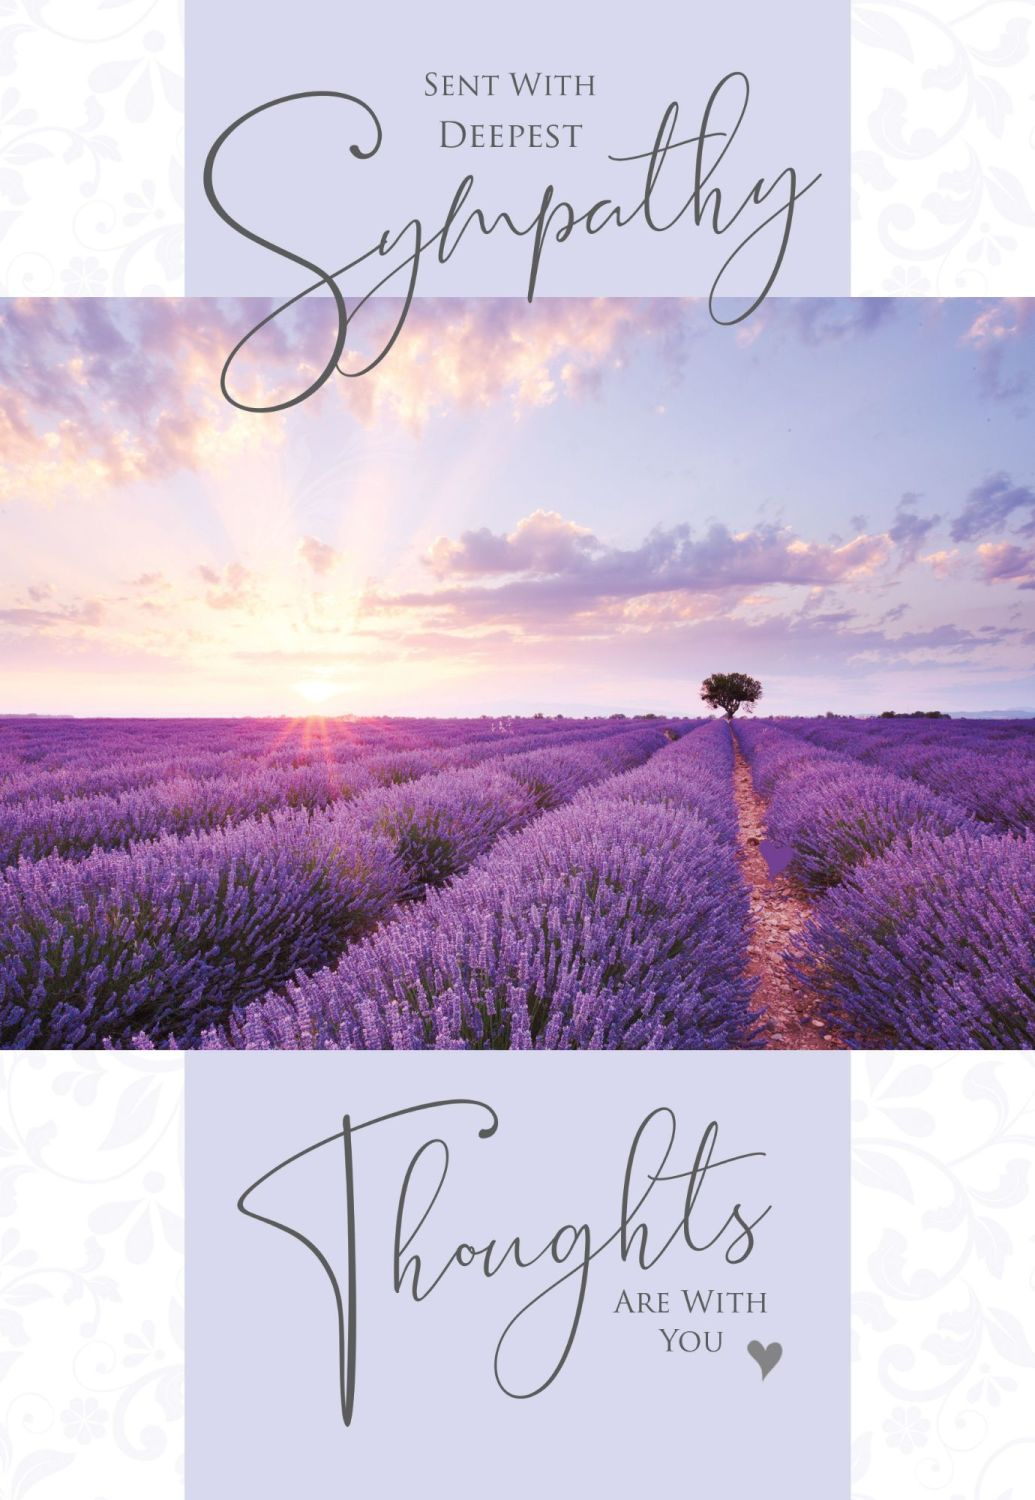 Deepest Sympathy Cards - THOUGHTS Are With YOU - LAVENDER Field SYMPATHY Ca